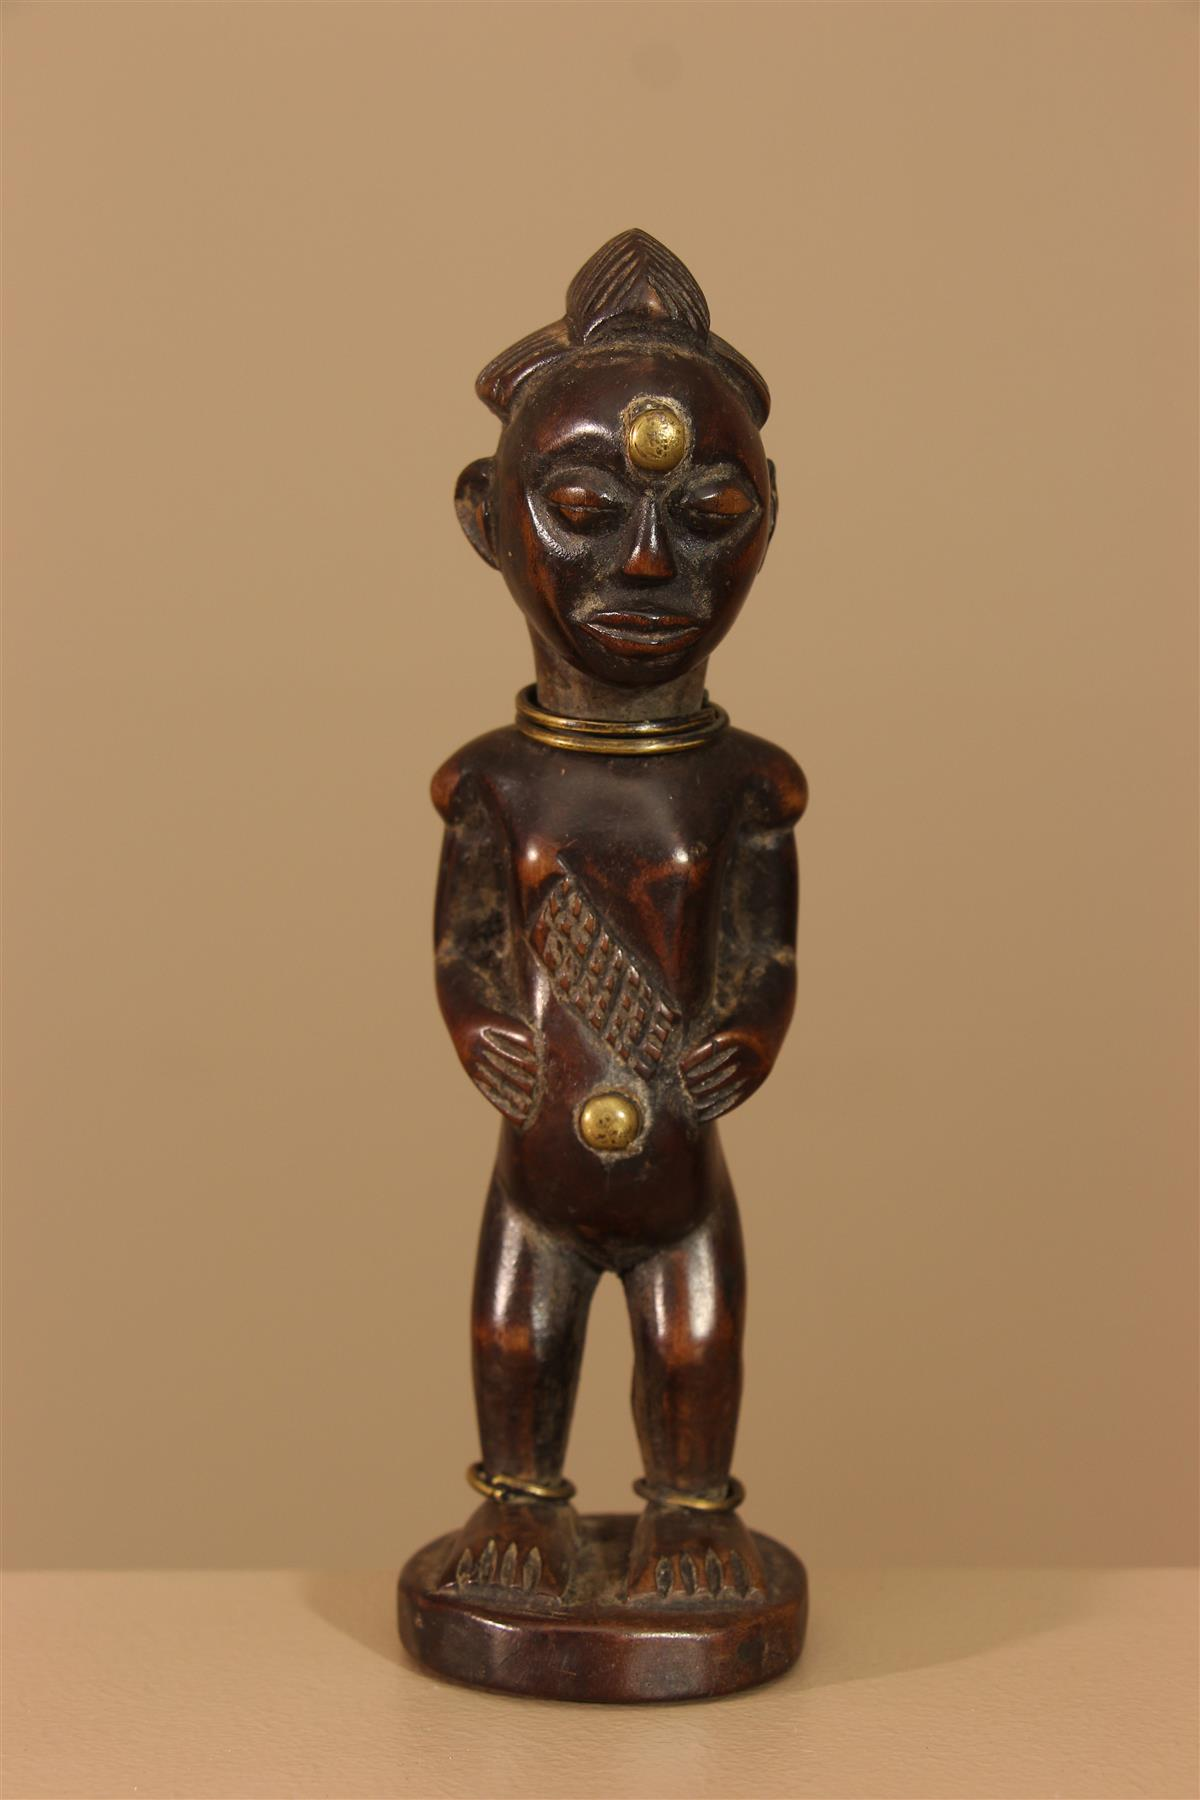 Statuette Punu - Déco africaine - Art africain traditionnel